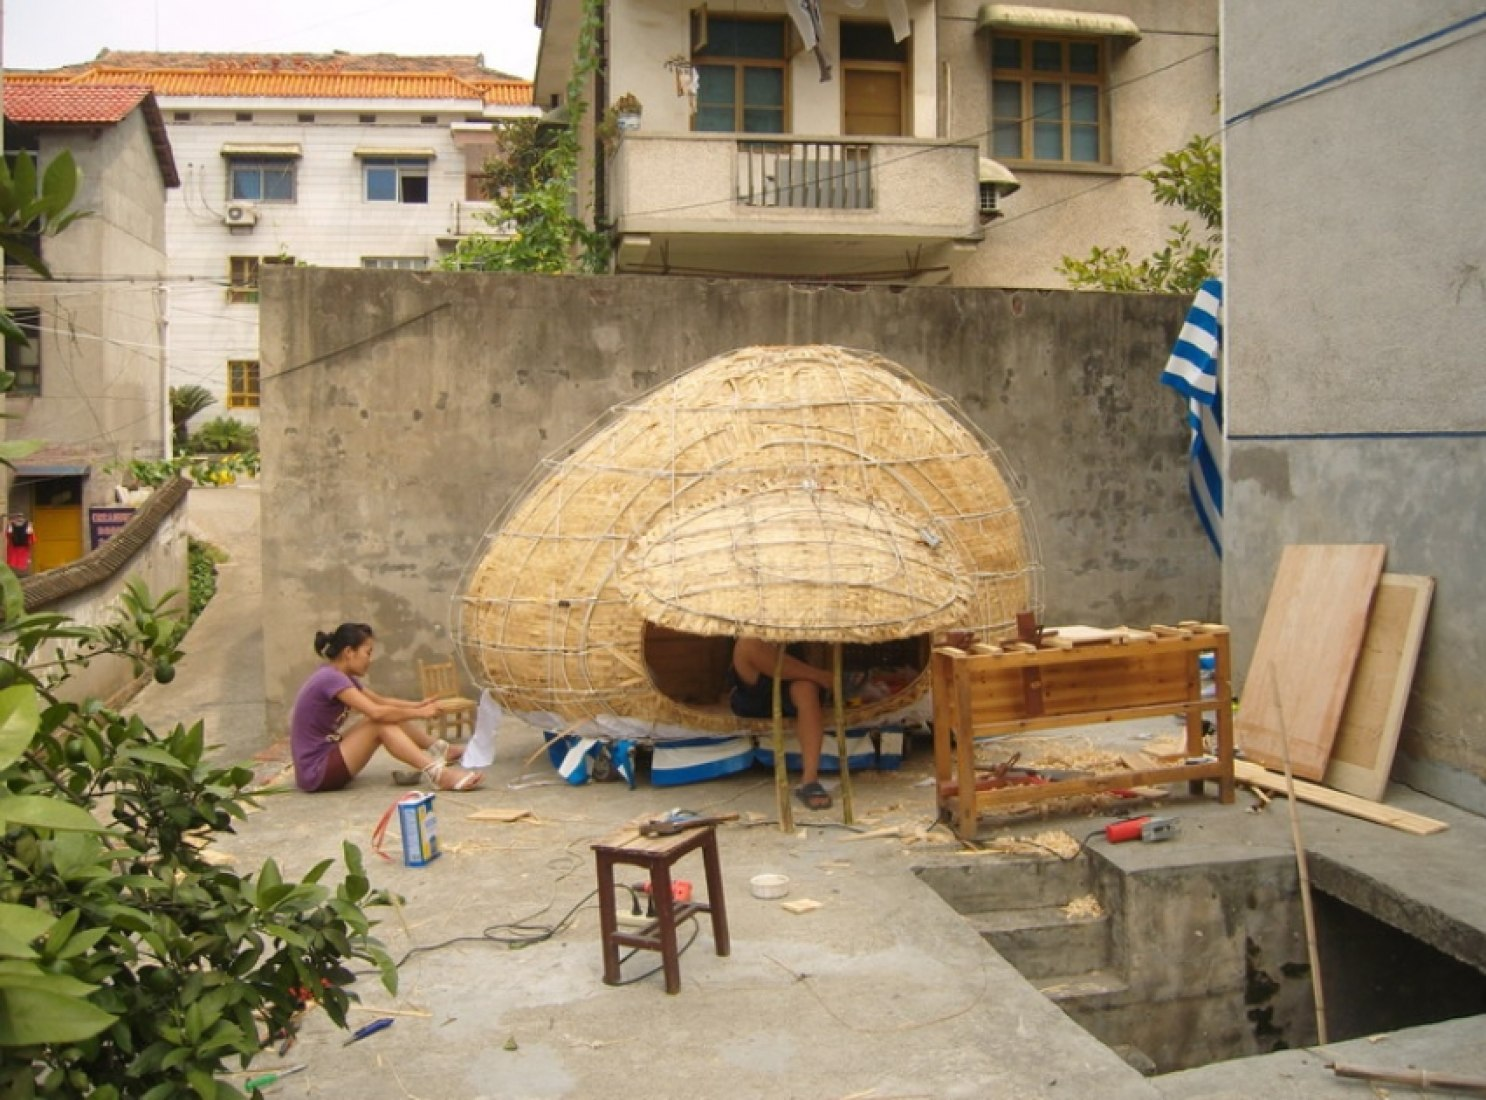 Process building, 2. house by Dai Haifei